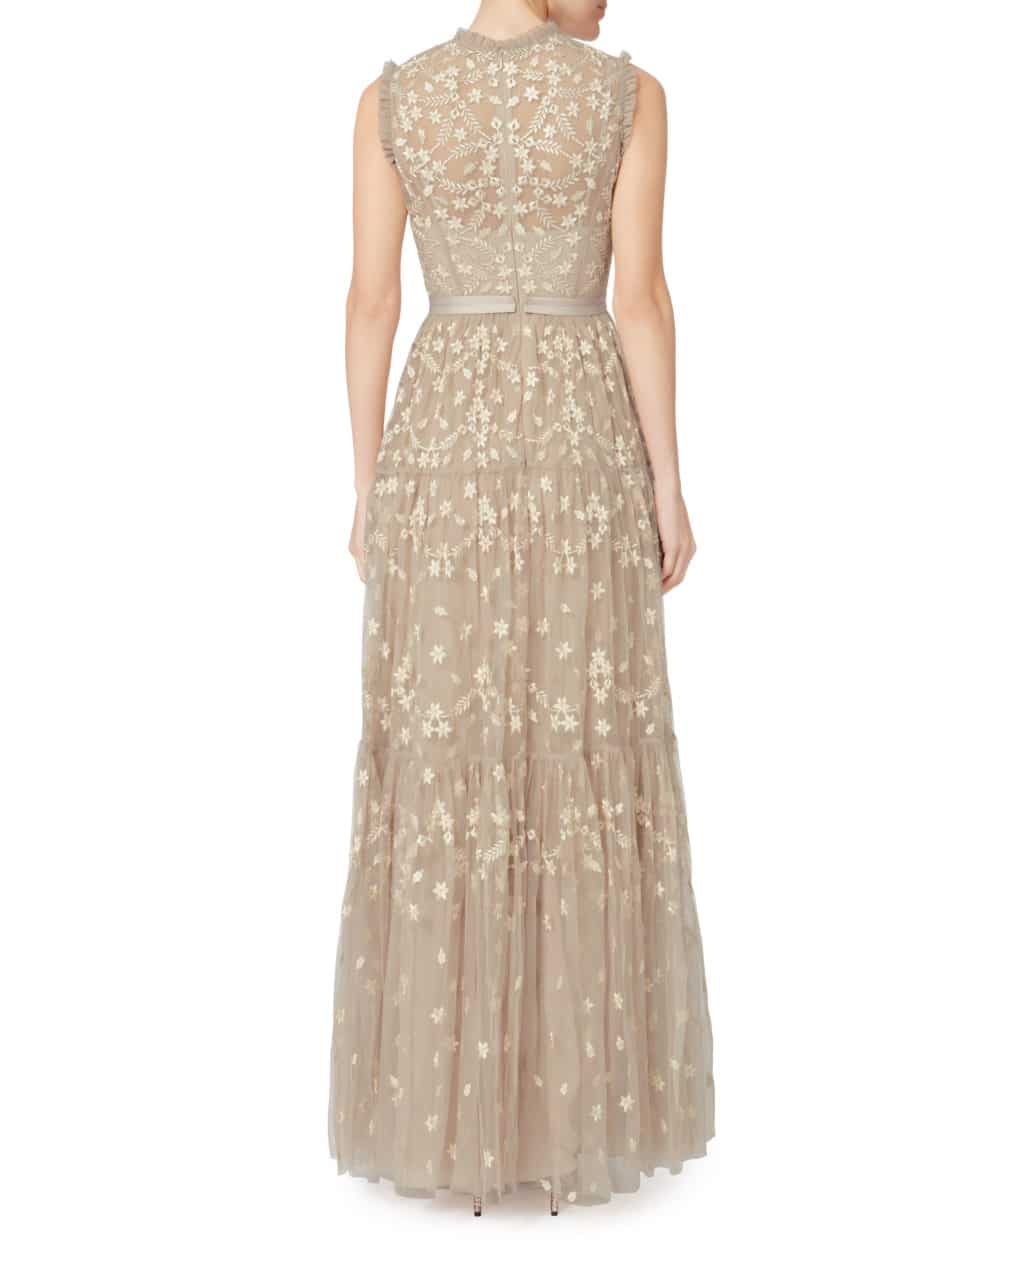 NEEDLE & THREAD Clover-Embellished Beige / Cream Gown - We Select ...